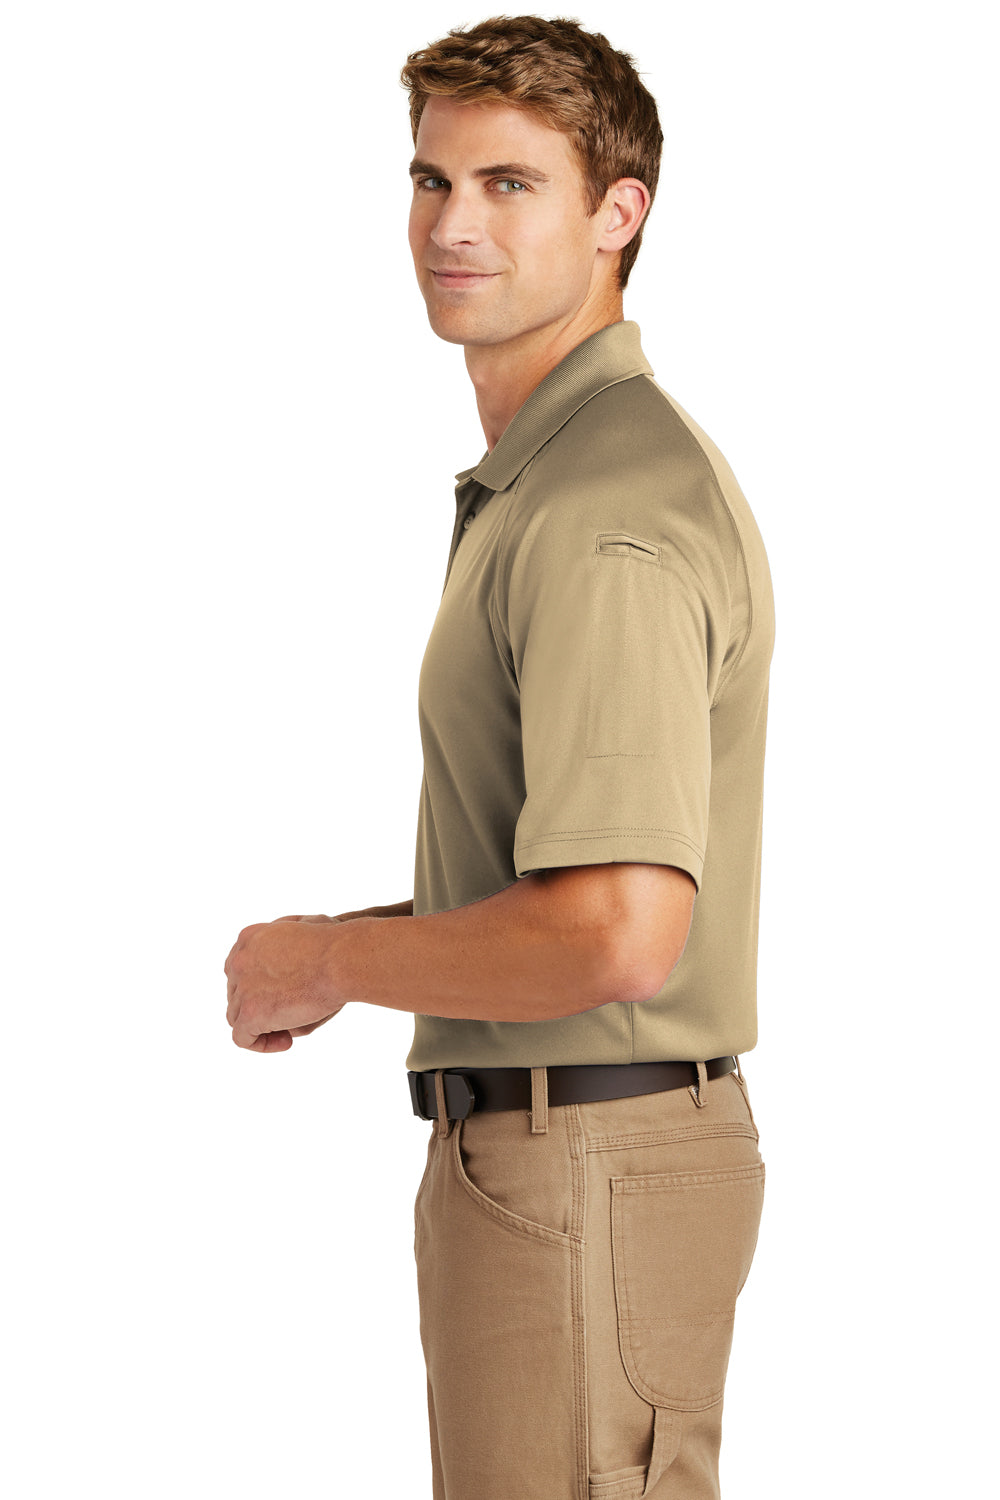 CornerStone CS410 Mens Select Tactical Moisture Wicking Short Sleeve Polo Shirt Tan Brown Side